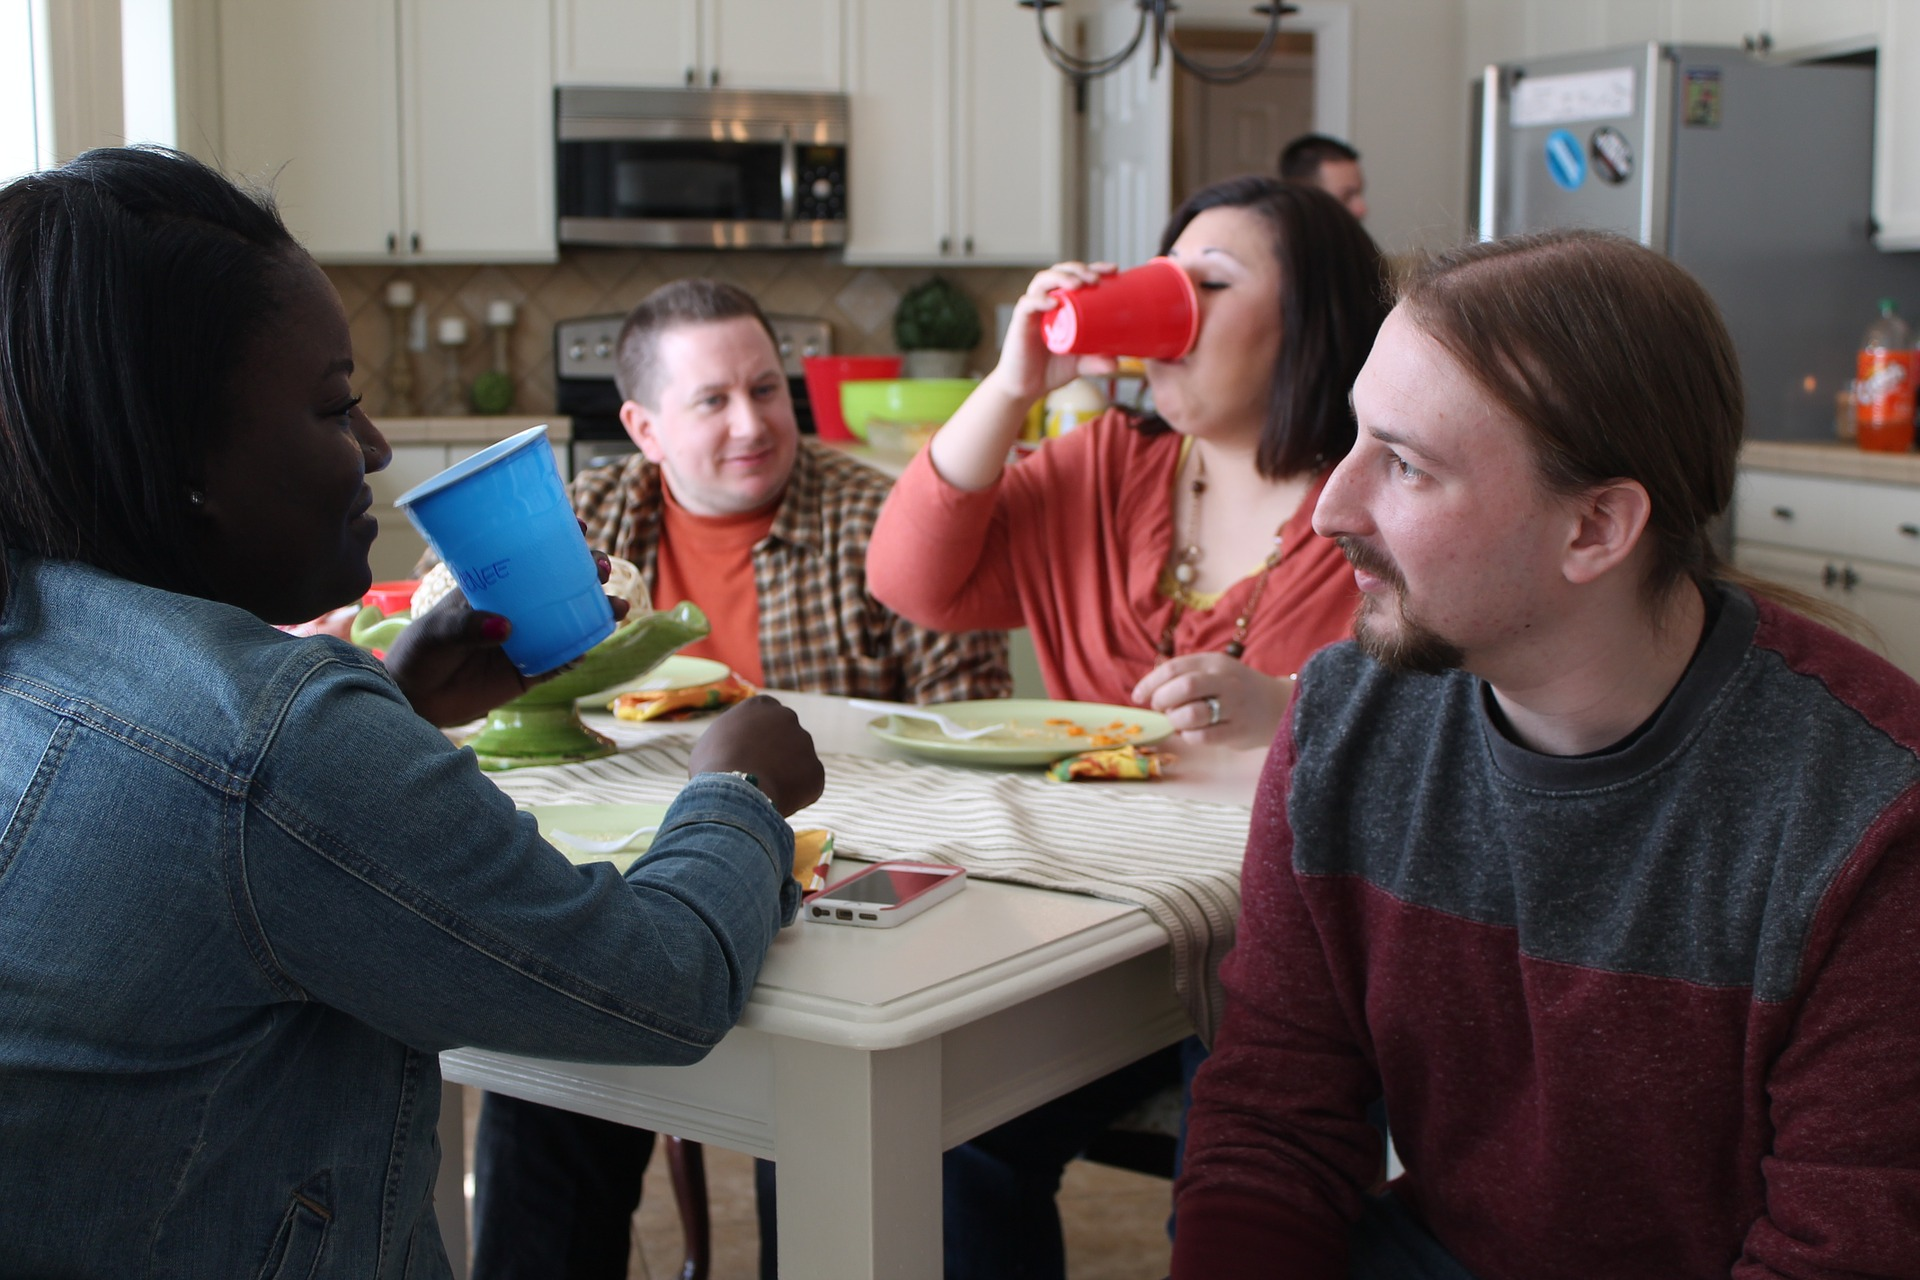 Groups of people around kitchen table, eating and drinking